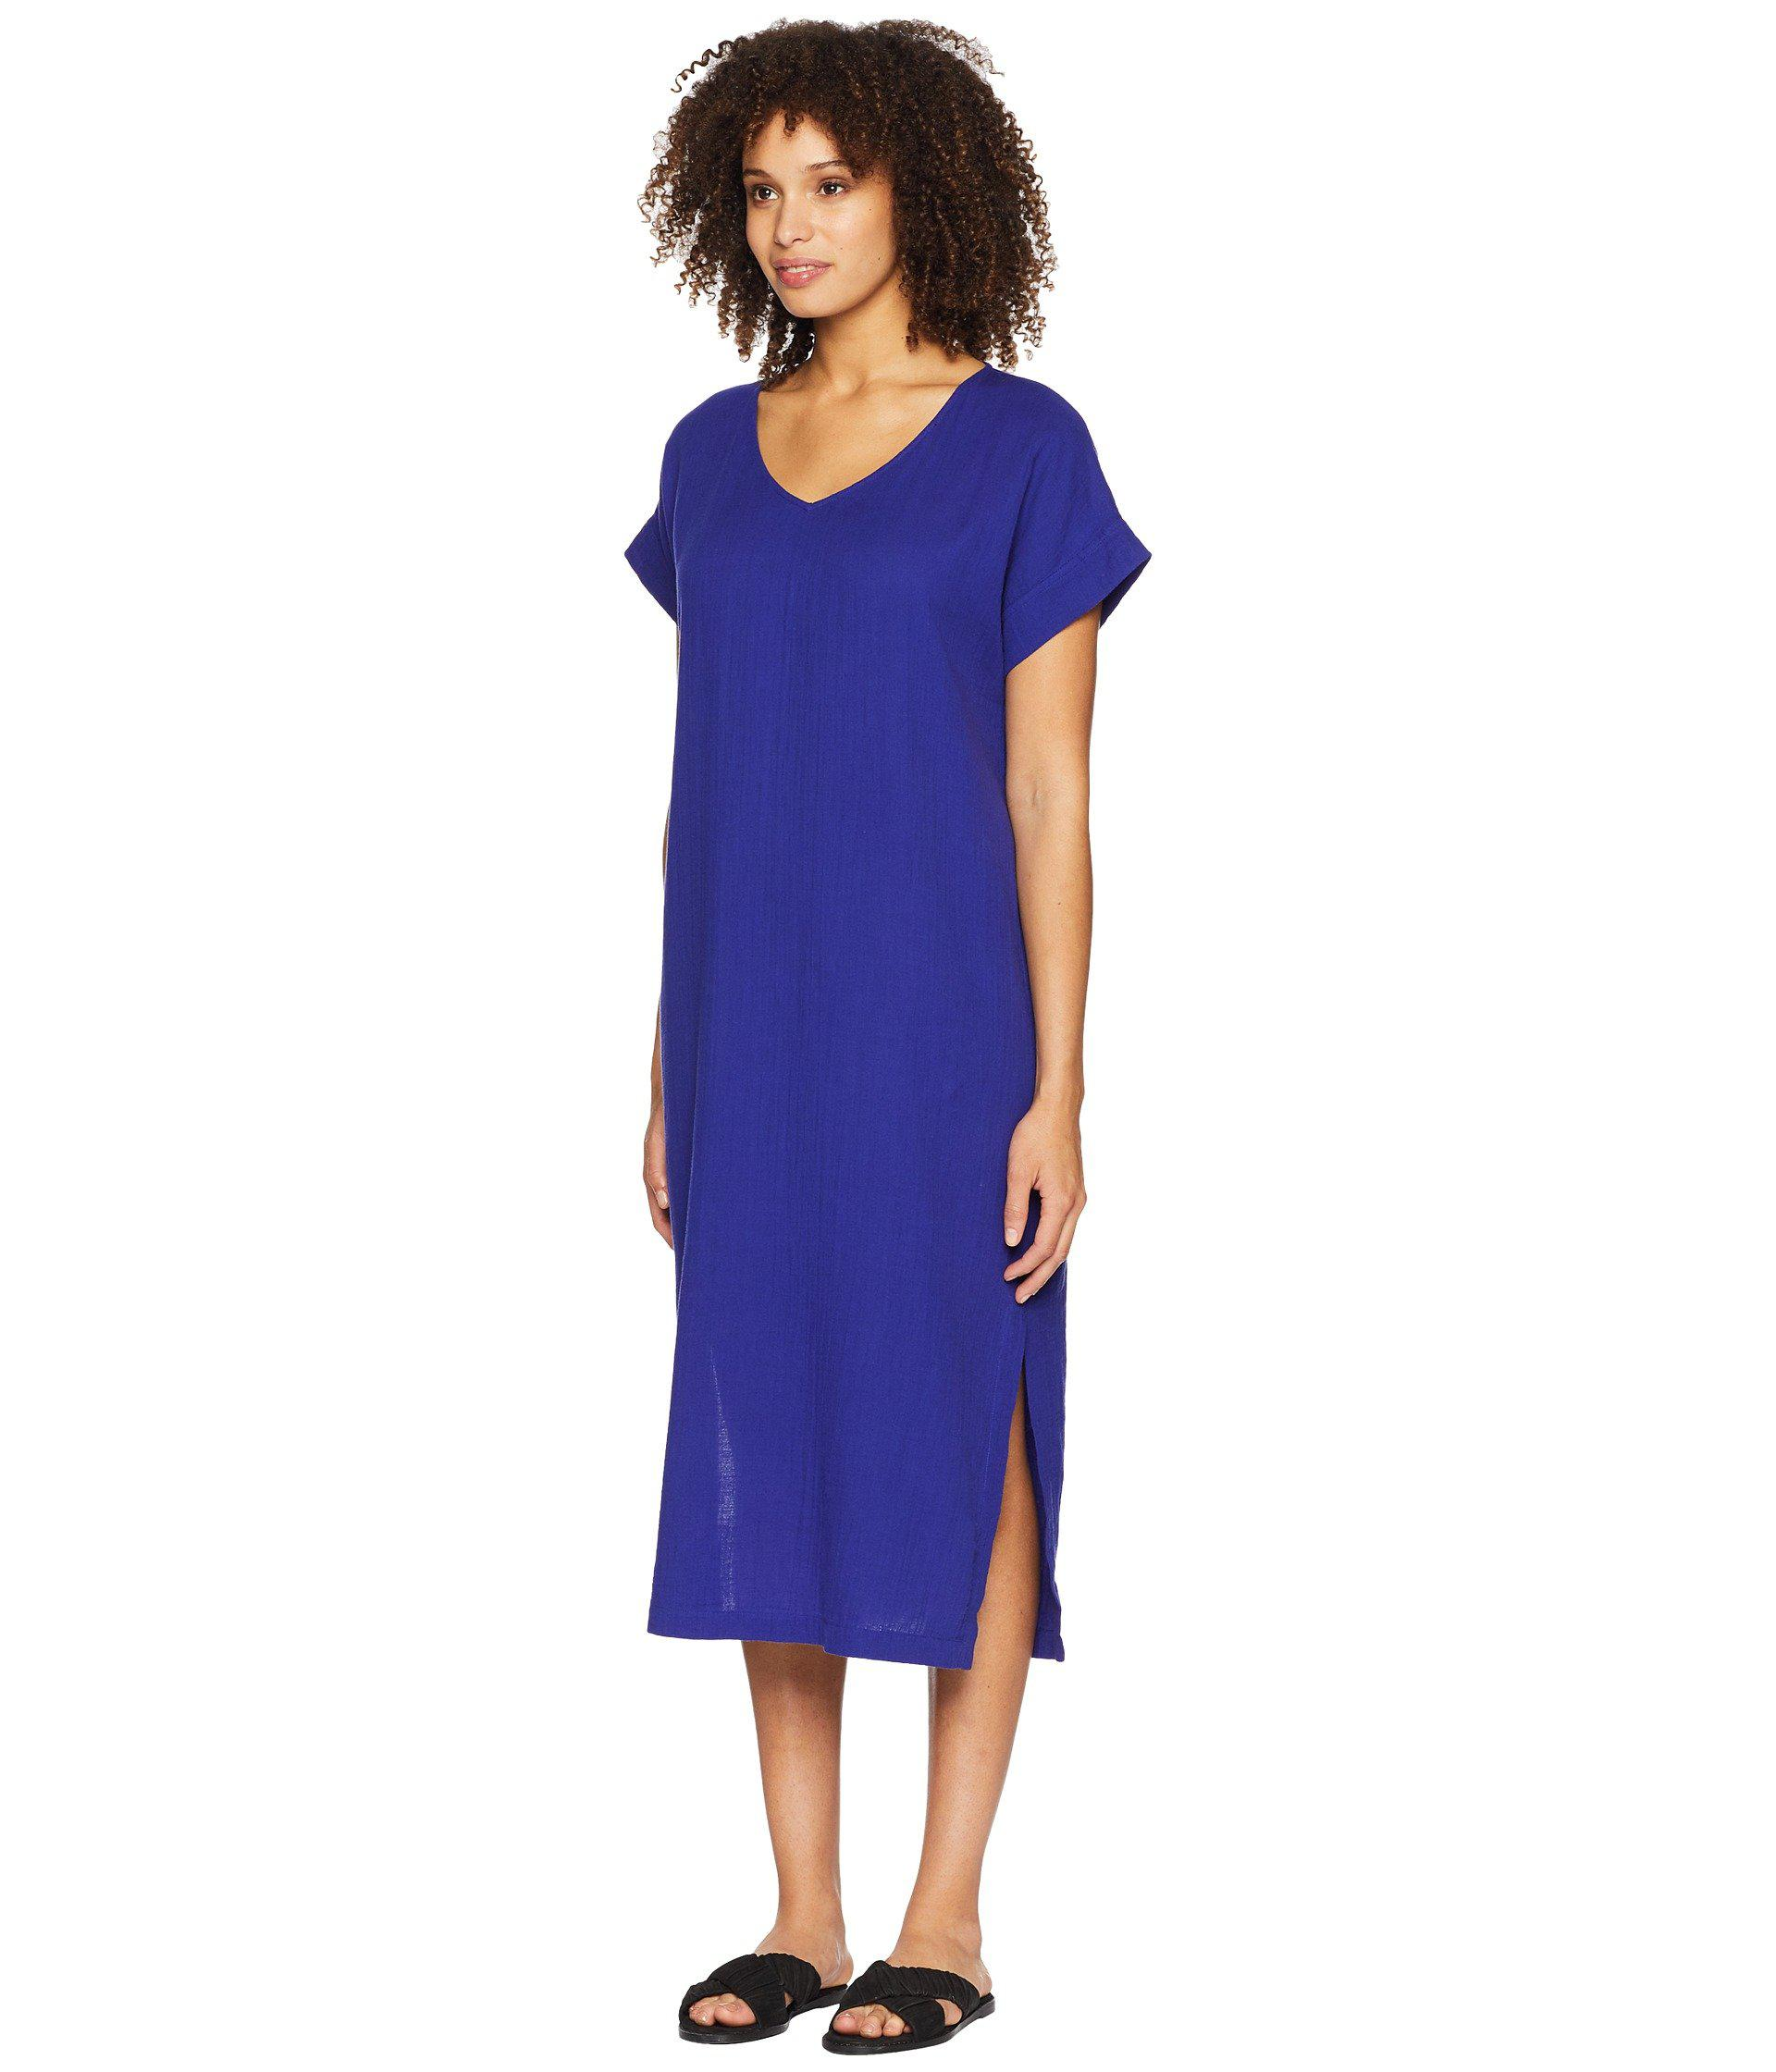 519f53274b78e Lyst - Eileen Fisher V-neck Cotton Gauze Dress in Blue - Save 33%